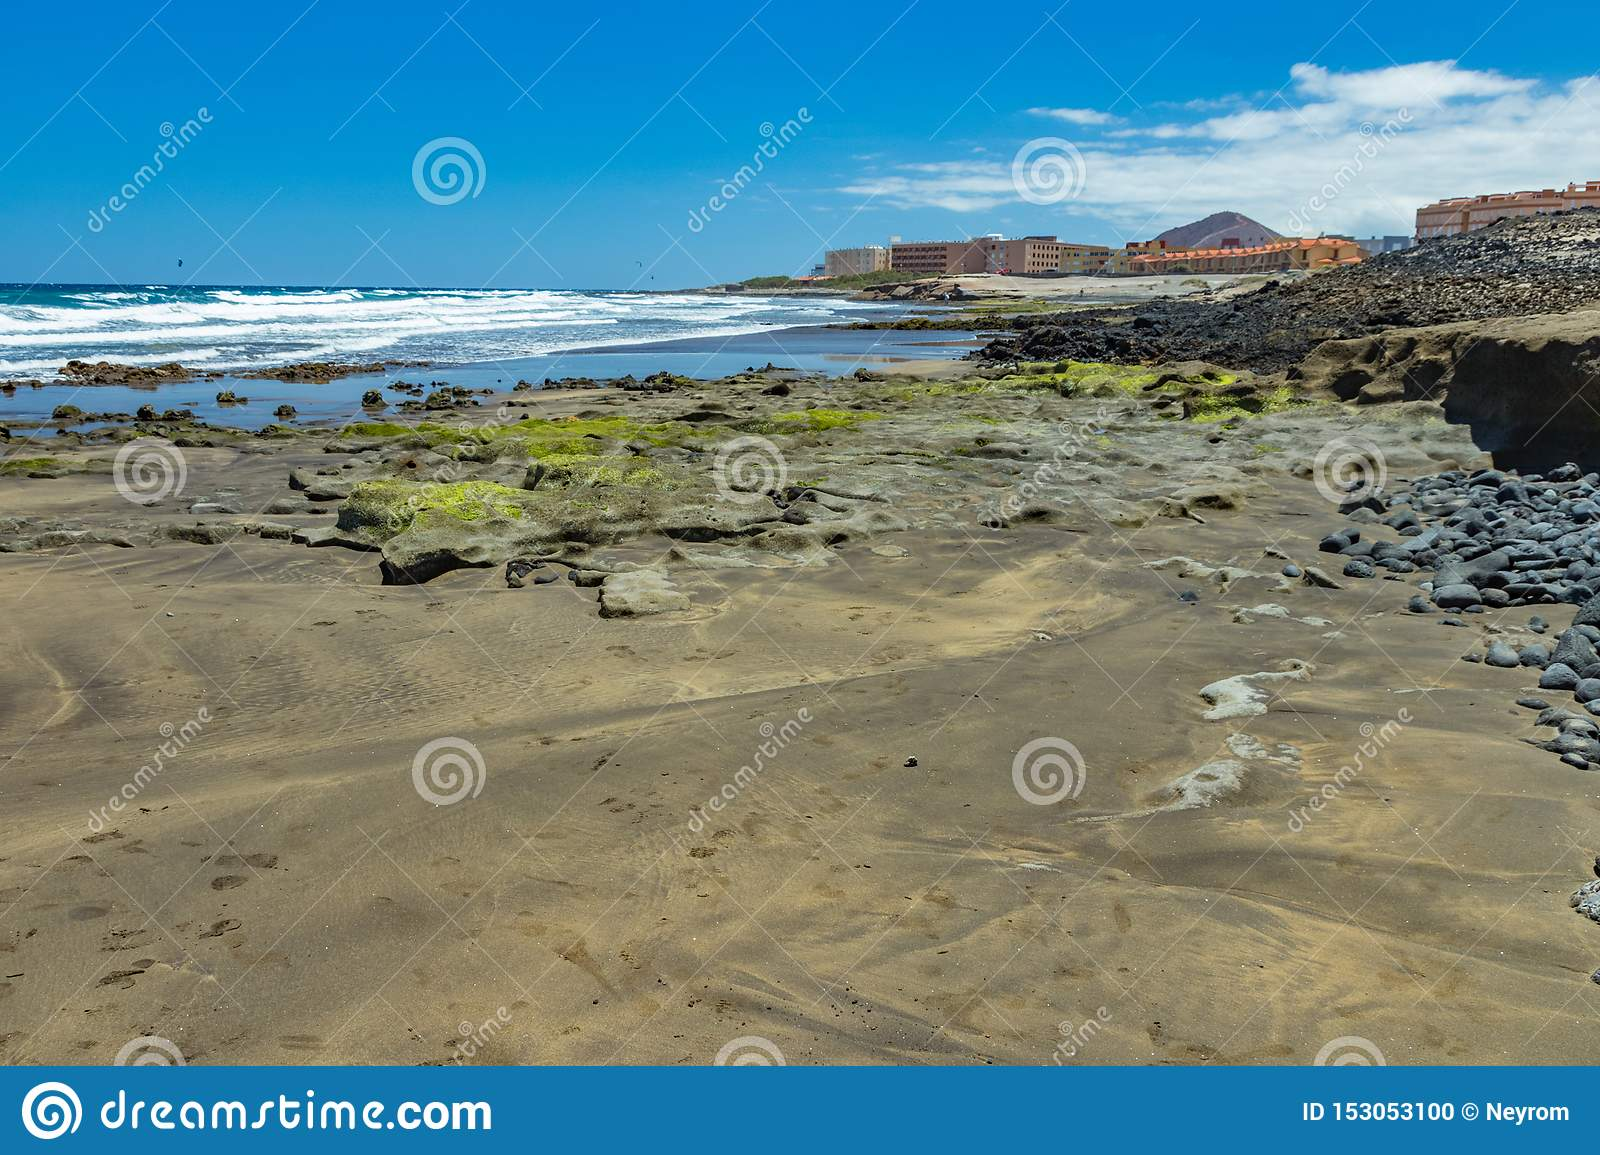 Beautiful natural southern coastline with wildlife, rocks and beaches near El Medano. Sunny day, blue sky and white fluffy clouds